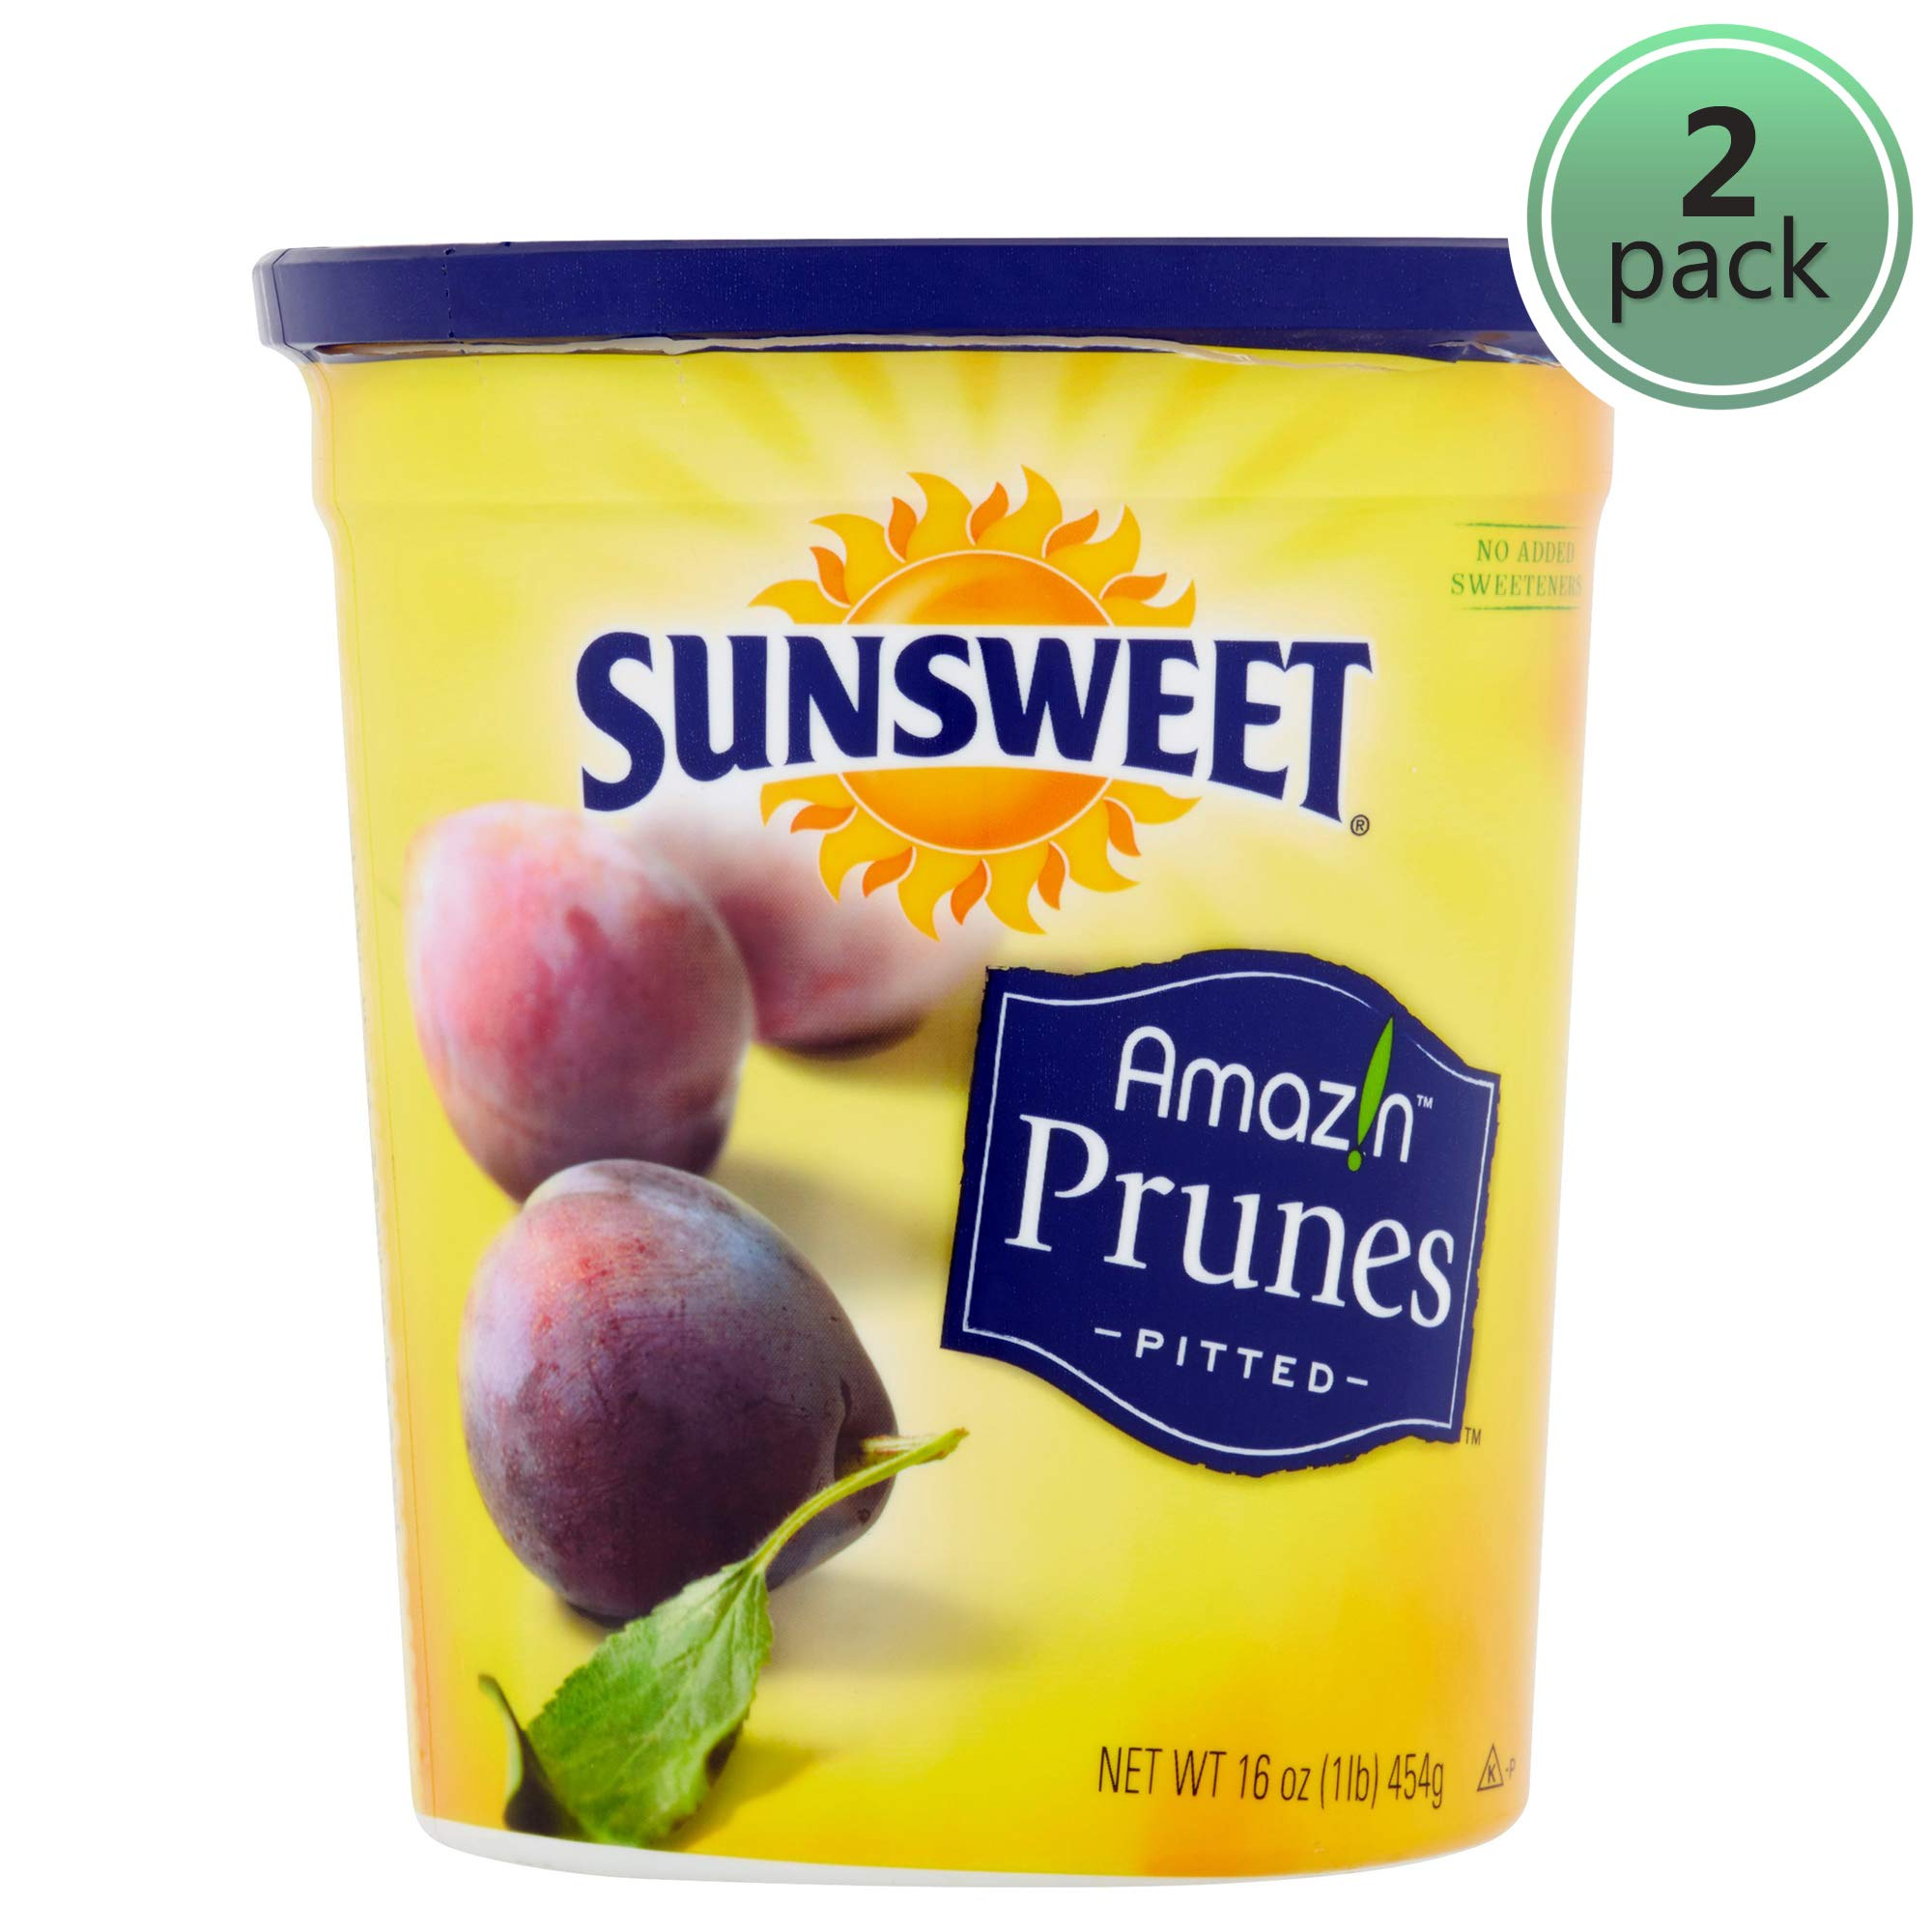 SUNSWEET Amazin Pitted Prunes, 16 oz - Pack of 2 by Sunsweet